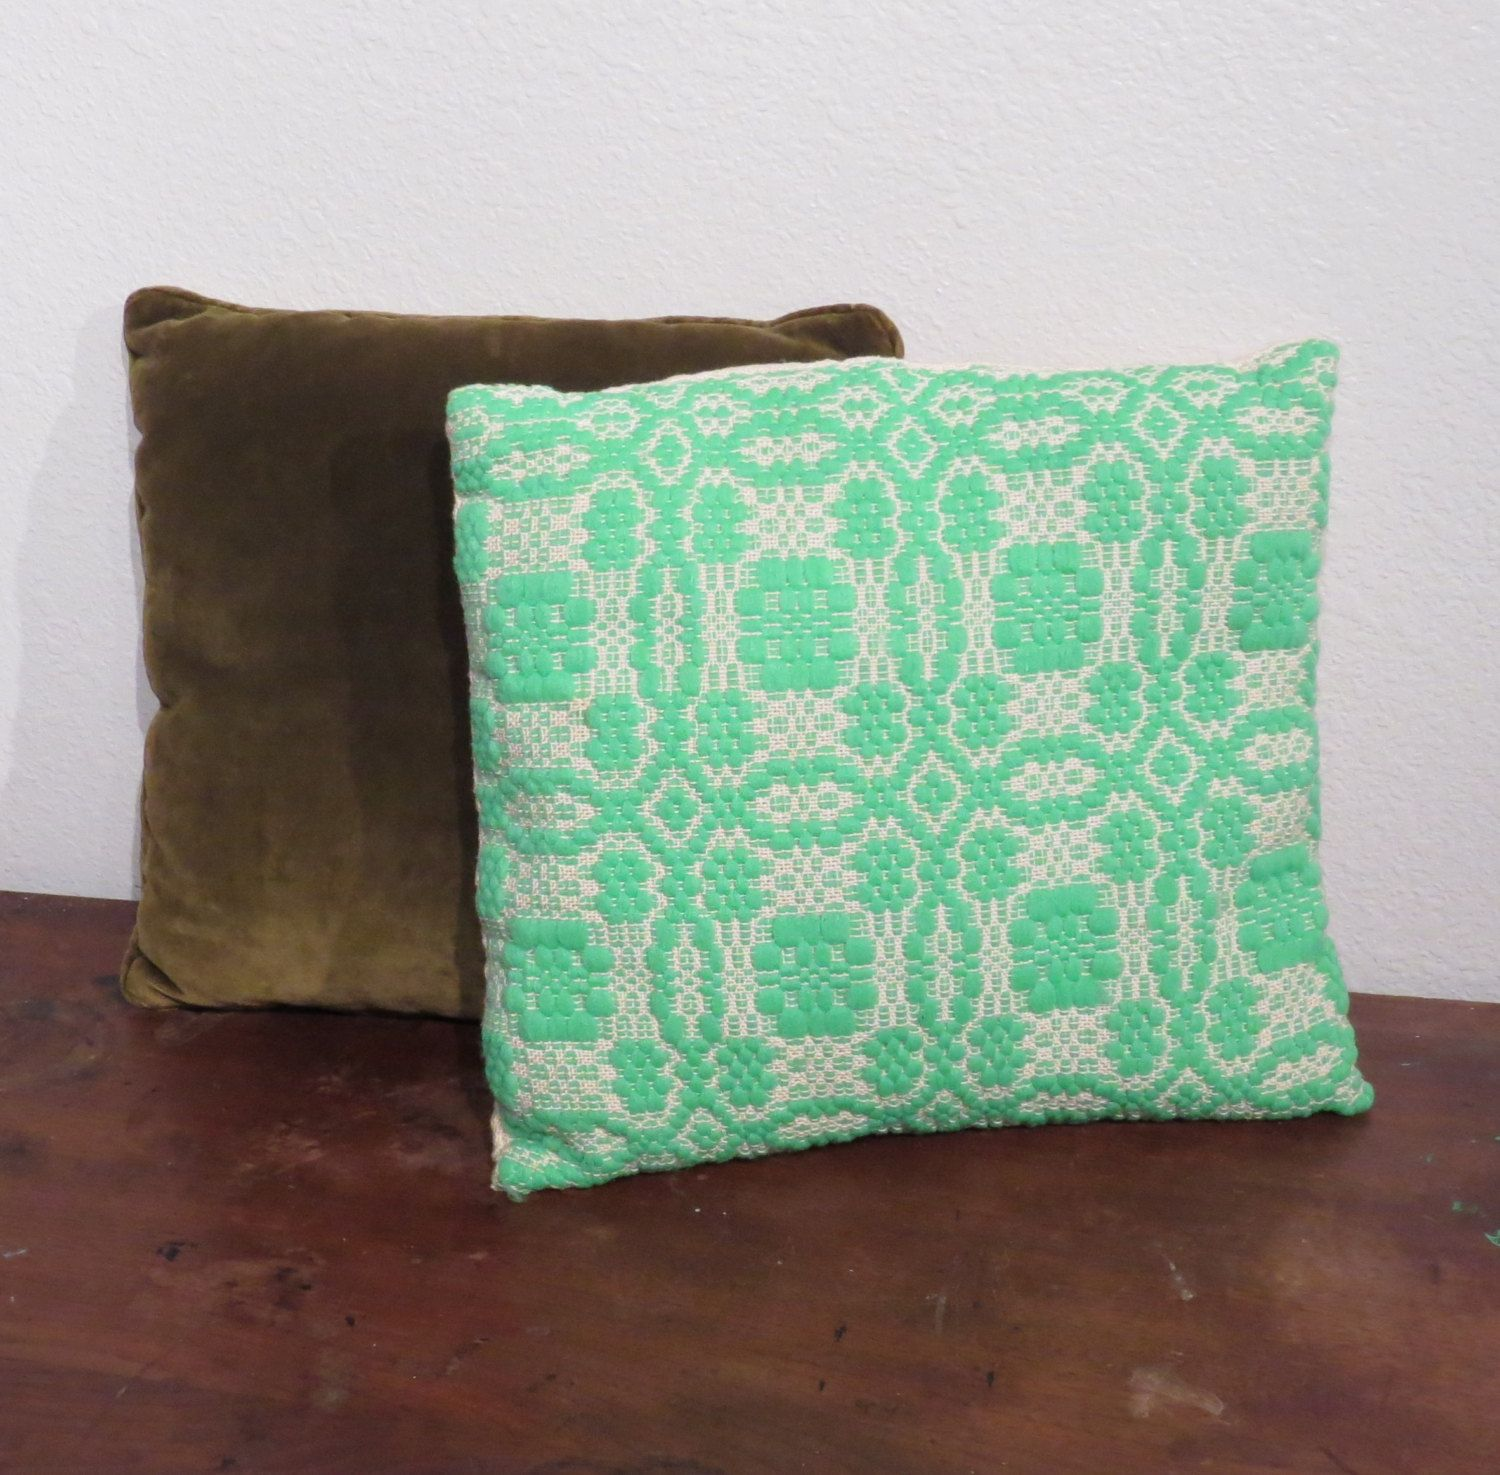 Vintage knit pillow embroidered aqua lace pattern by hurstdesigns